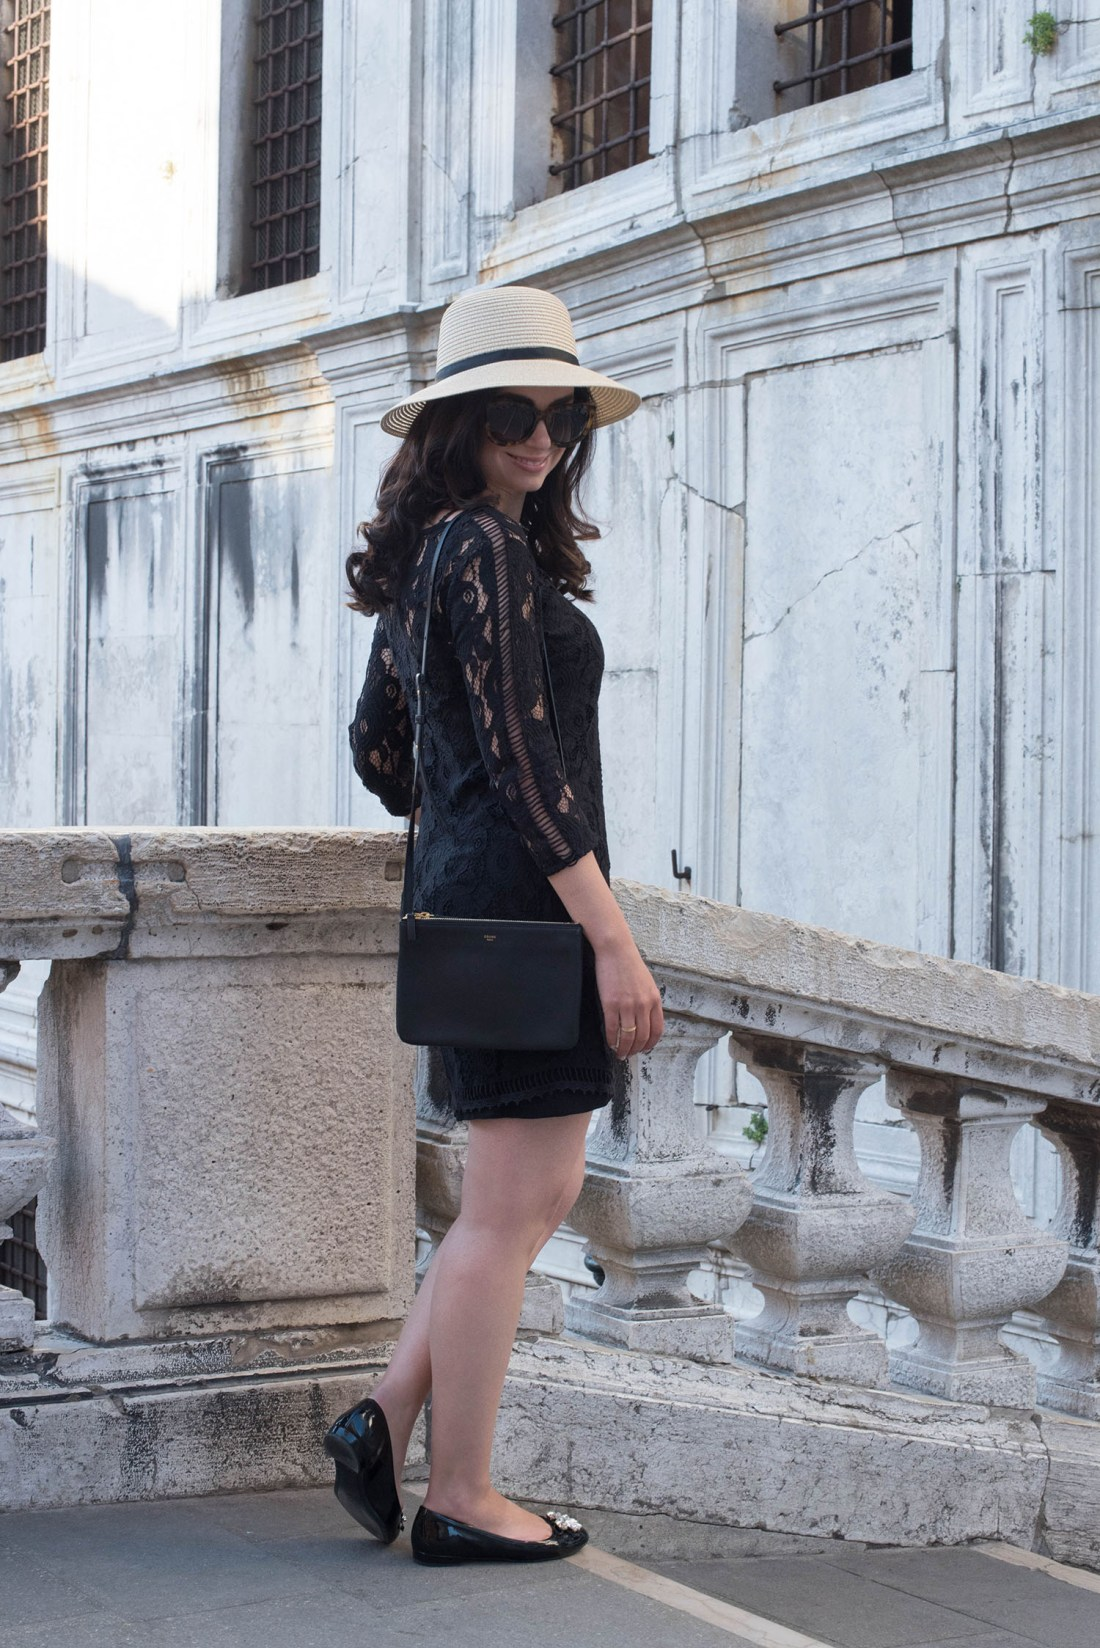 Winnipeg fashion blogger Cee Fardoe of Coco & Vera stands on a bridge in Venice wearing a Gentlefawn lace dress and carrying a Celine trio bag